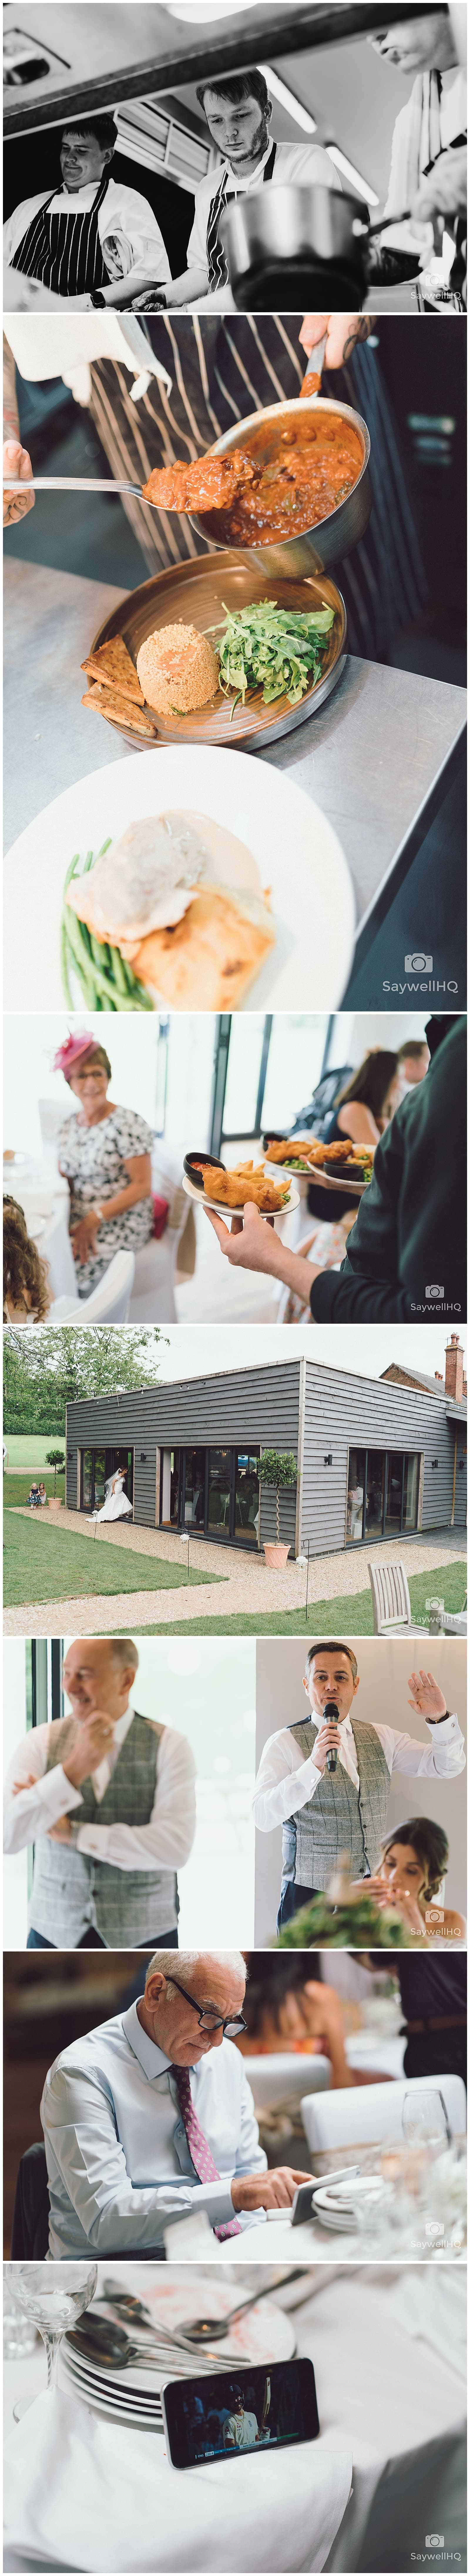 The Chequers Inn Woolsthorpe Wedding Photography - guest reactions to the grooms wedding speech